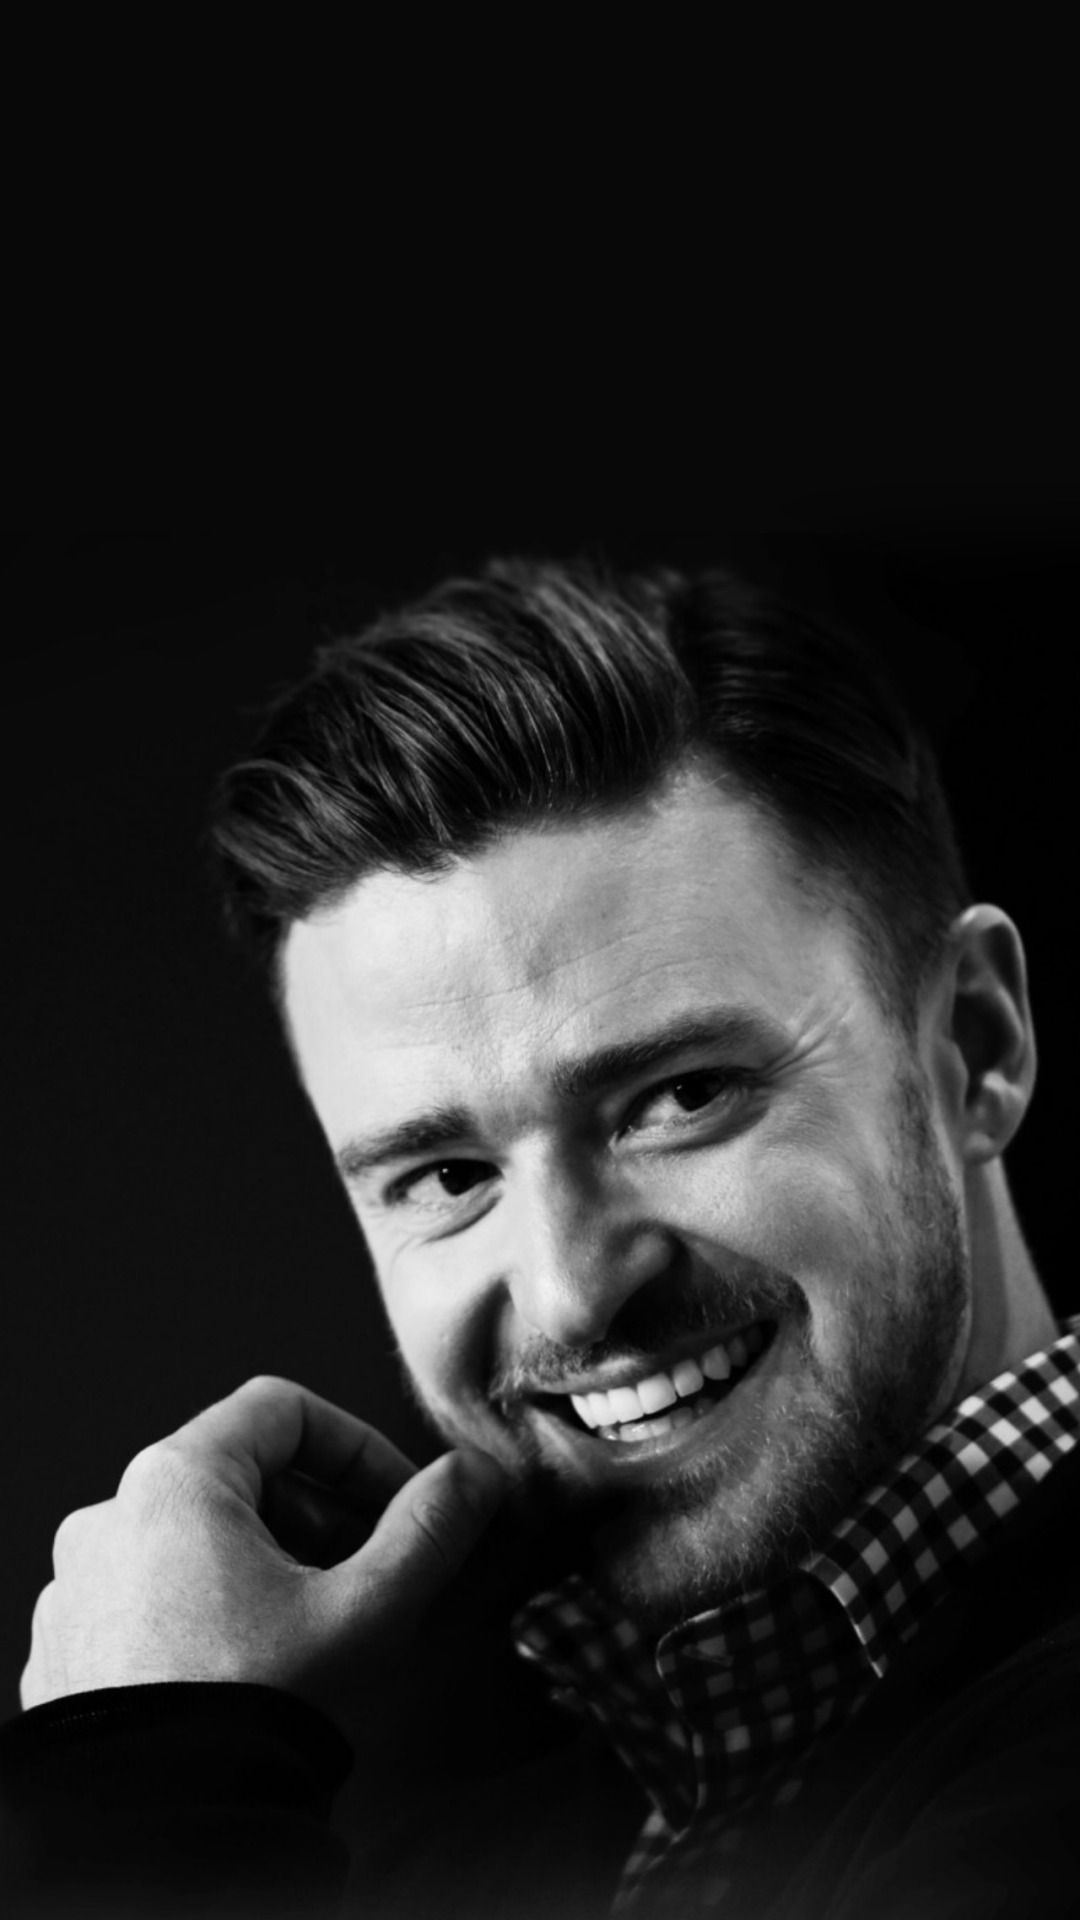 Justin iphone wallpaper tumblr - Stylish Justin Timberlake Iphone 5 Se Wallpaper